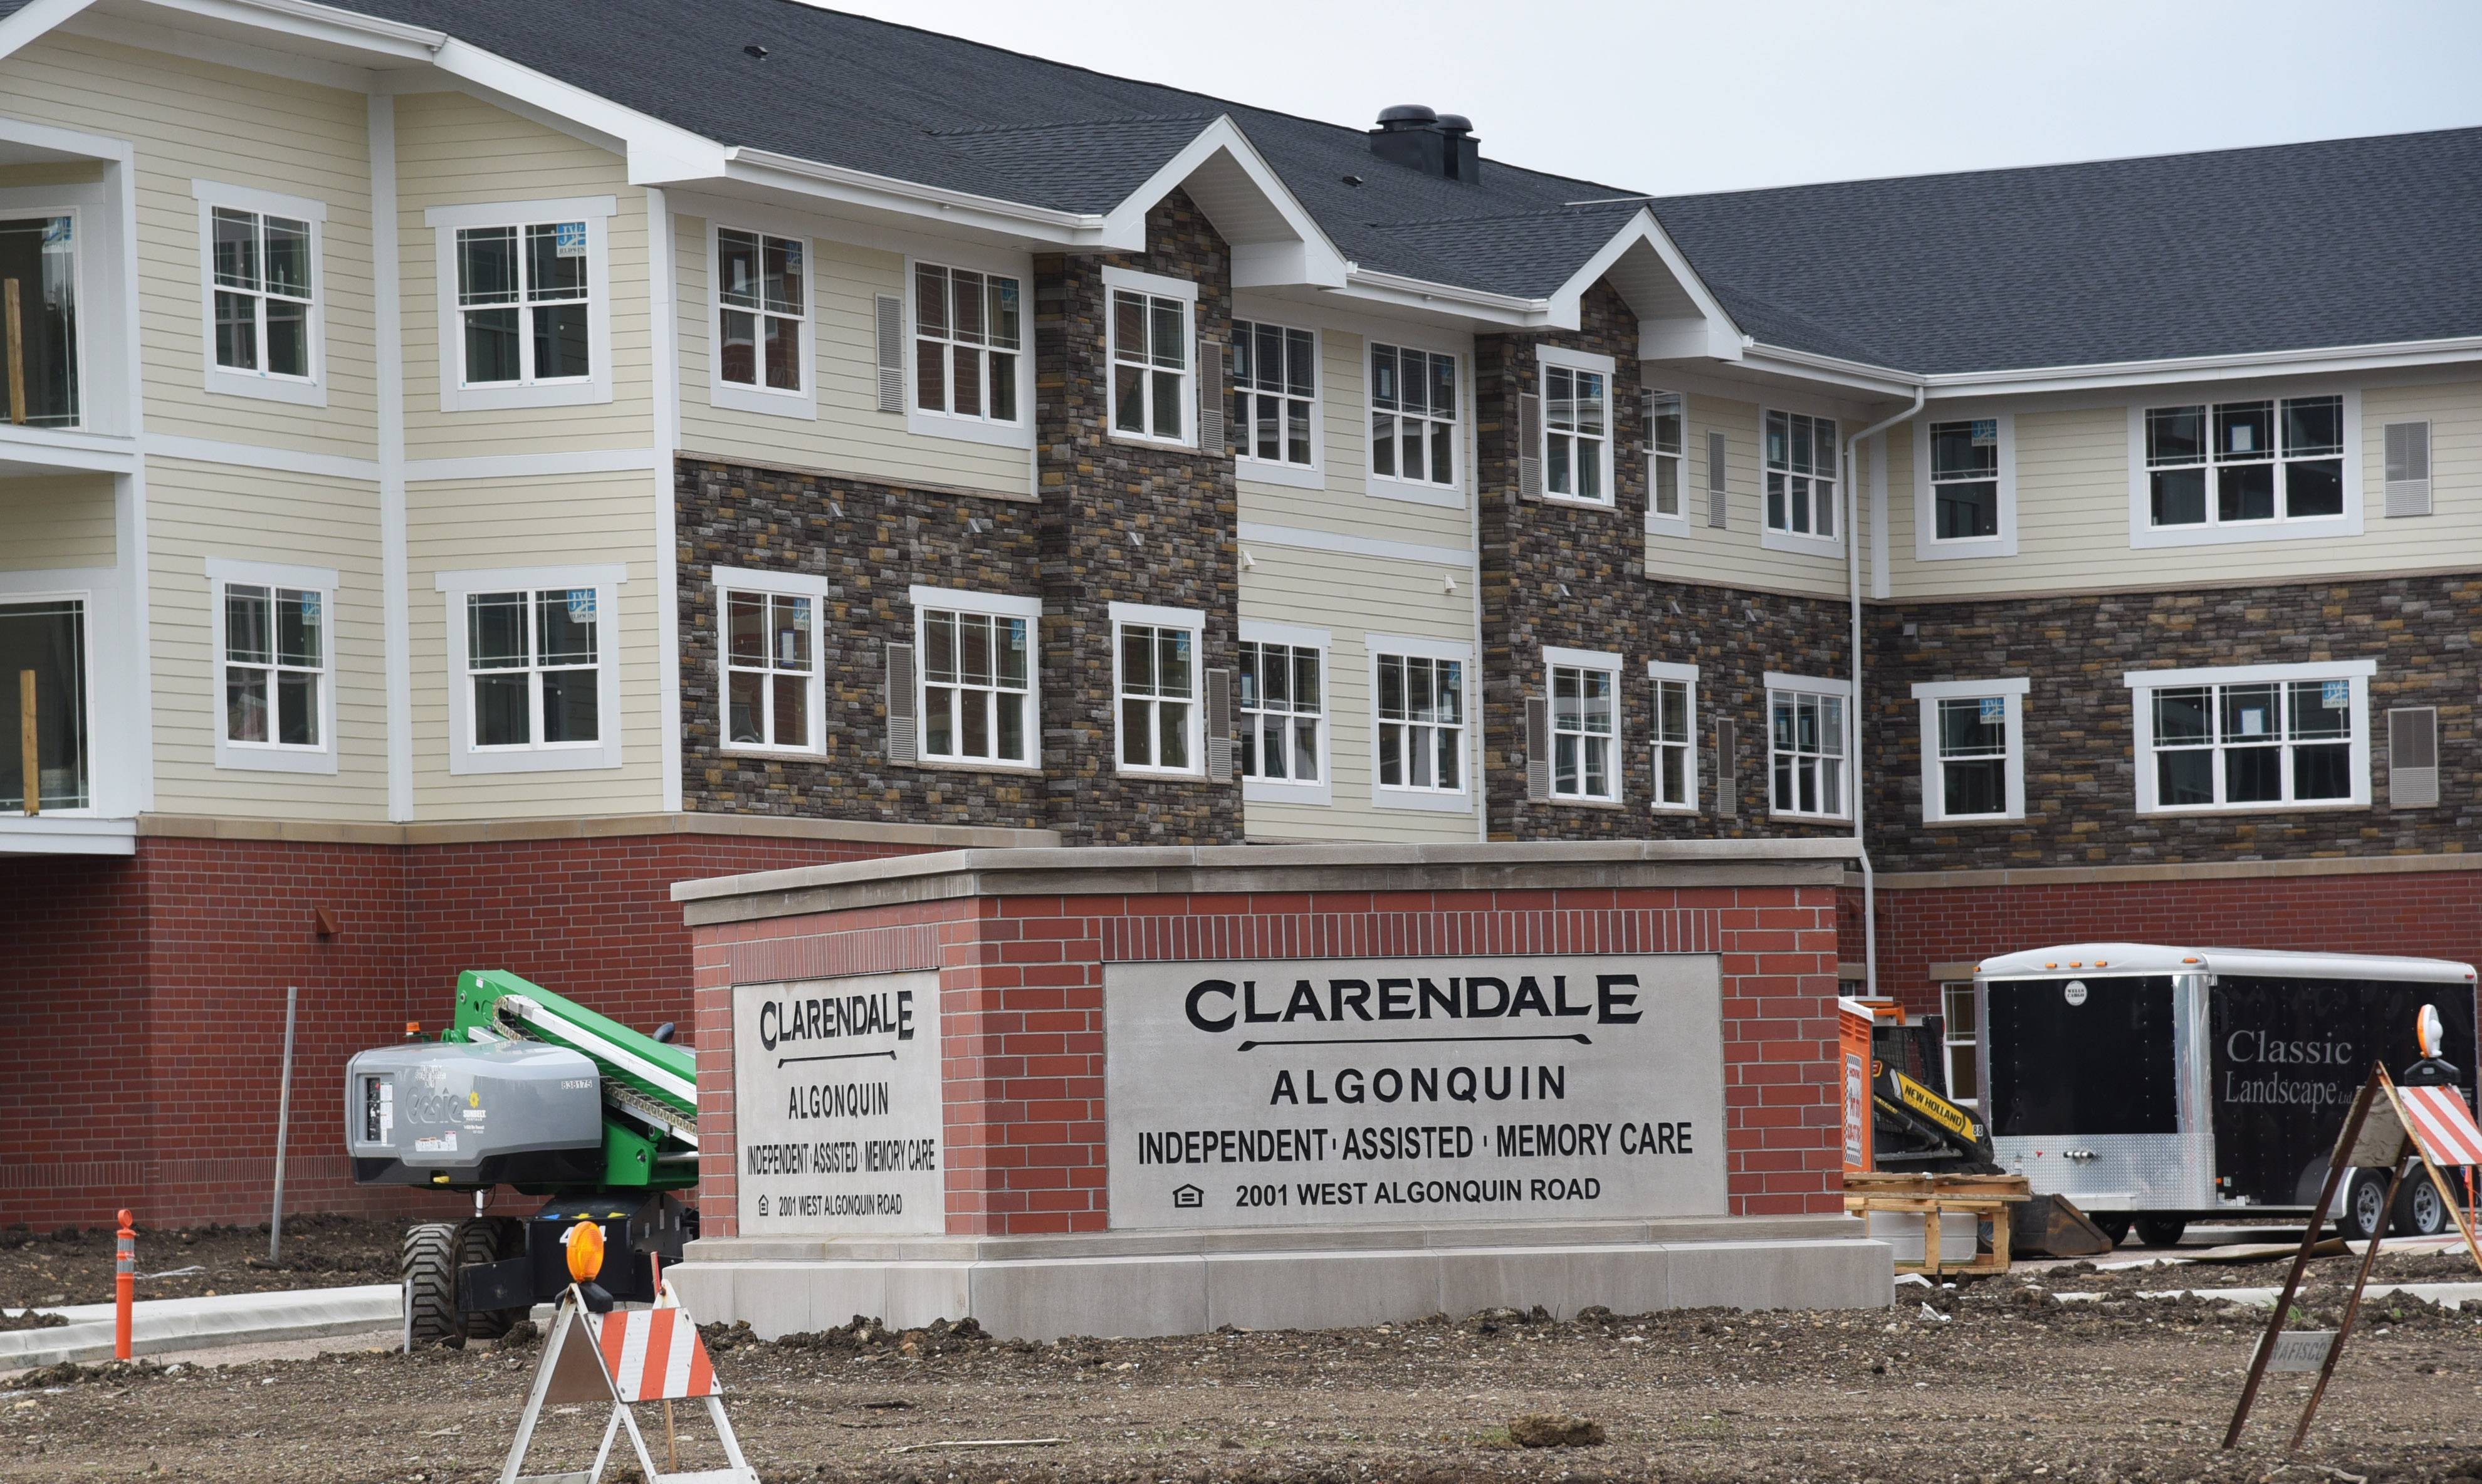 Clarendale of Algonquin, a 186-unit senior living community being built at 2001 W. Algonquin Road, is taking reservations for its independent living, assisted living and memory care rental apartments.